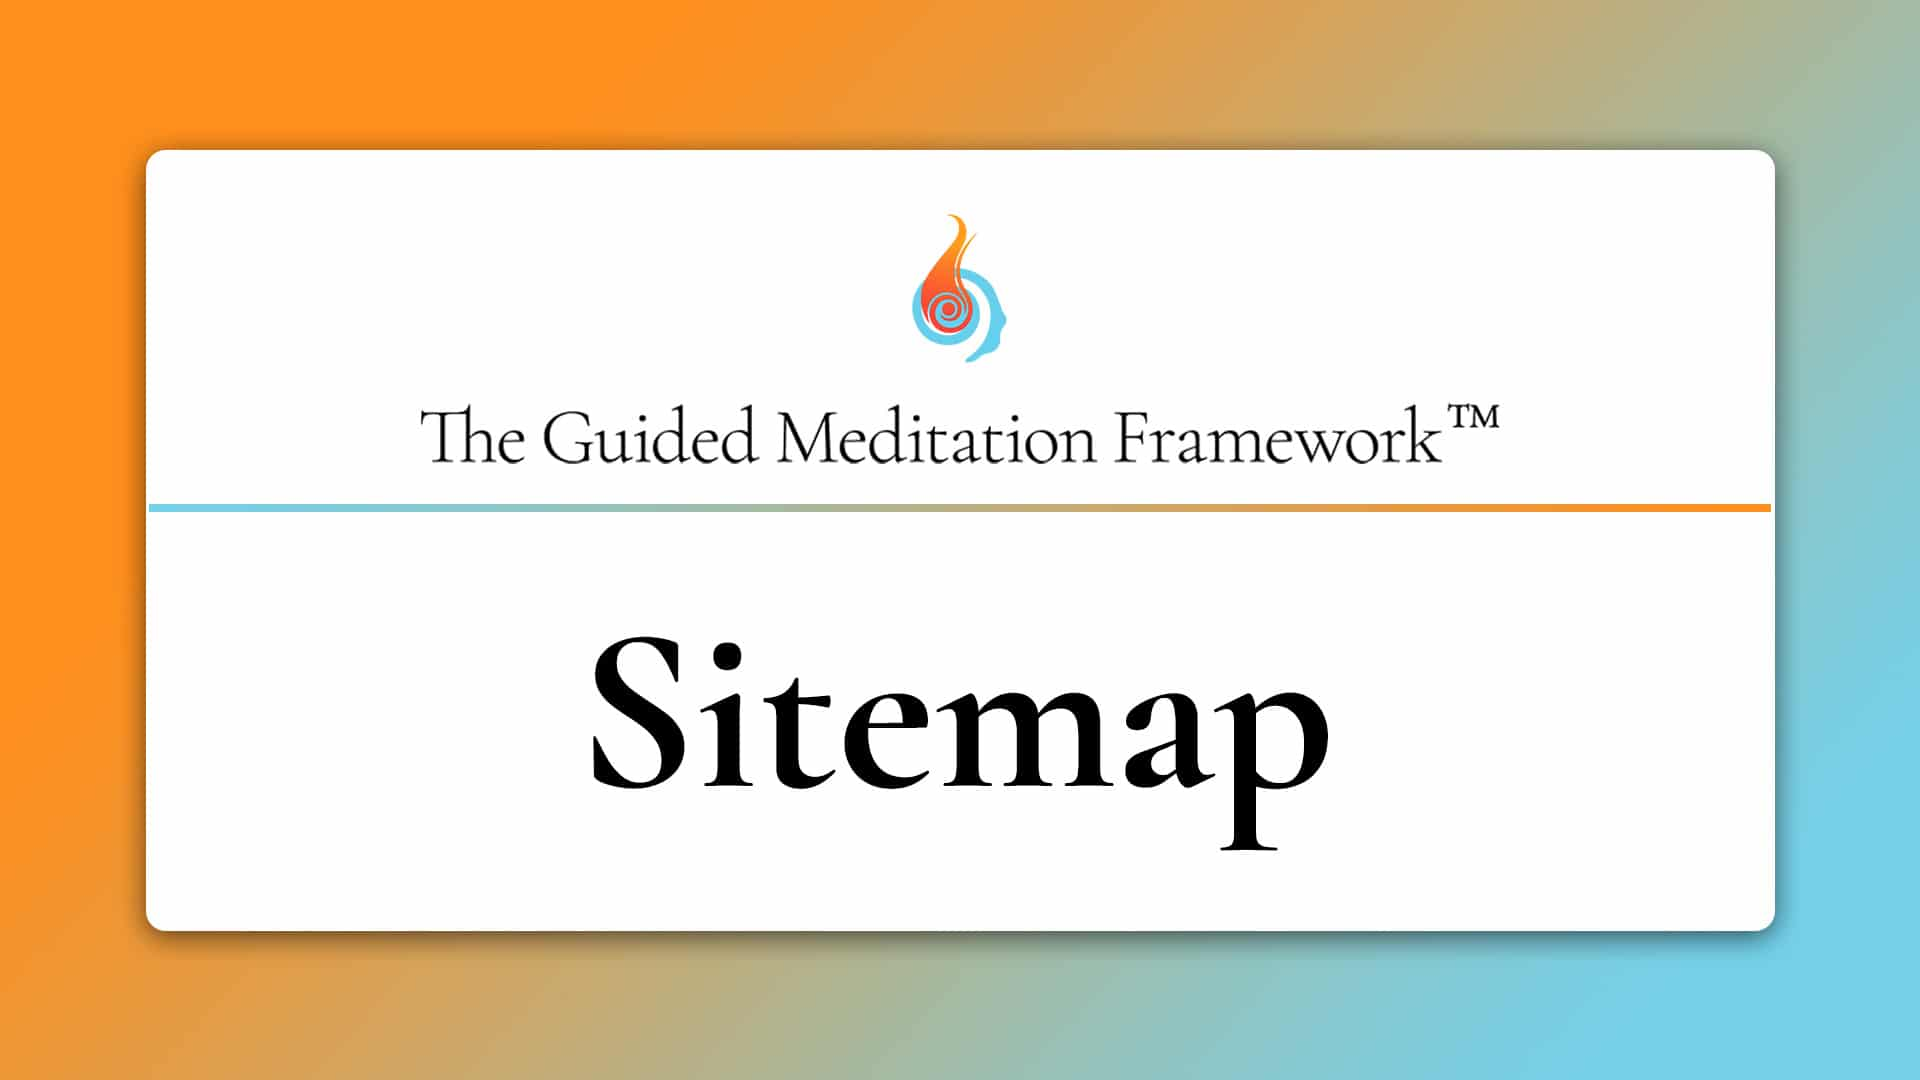 The Guided Meditation Framework sitemap